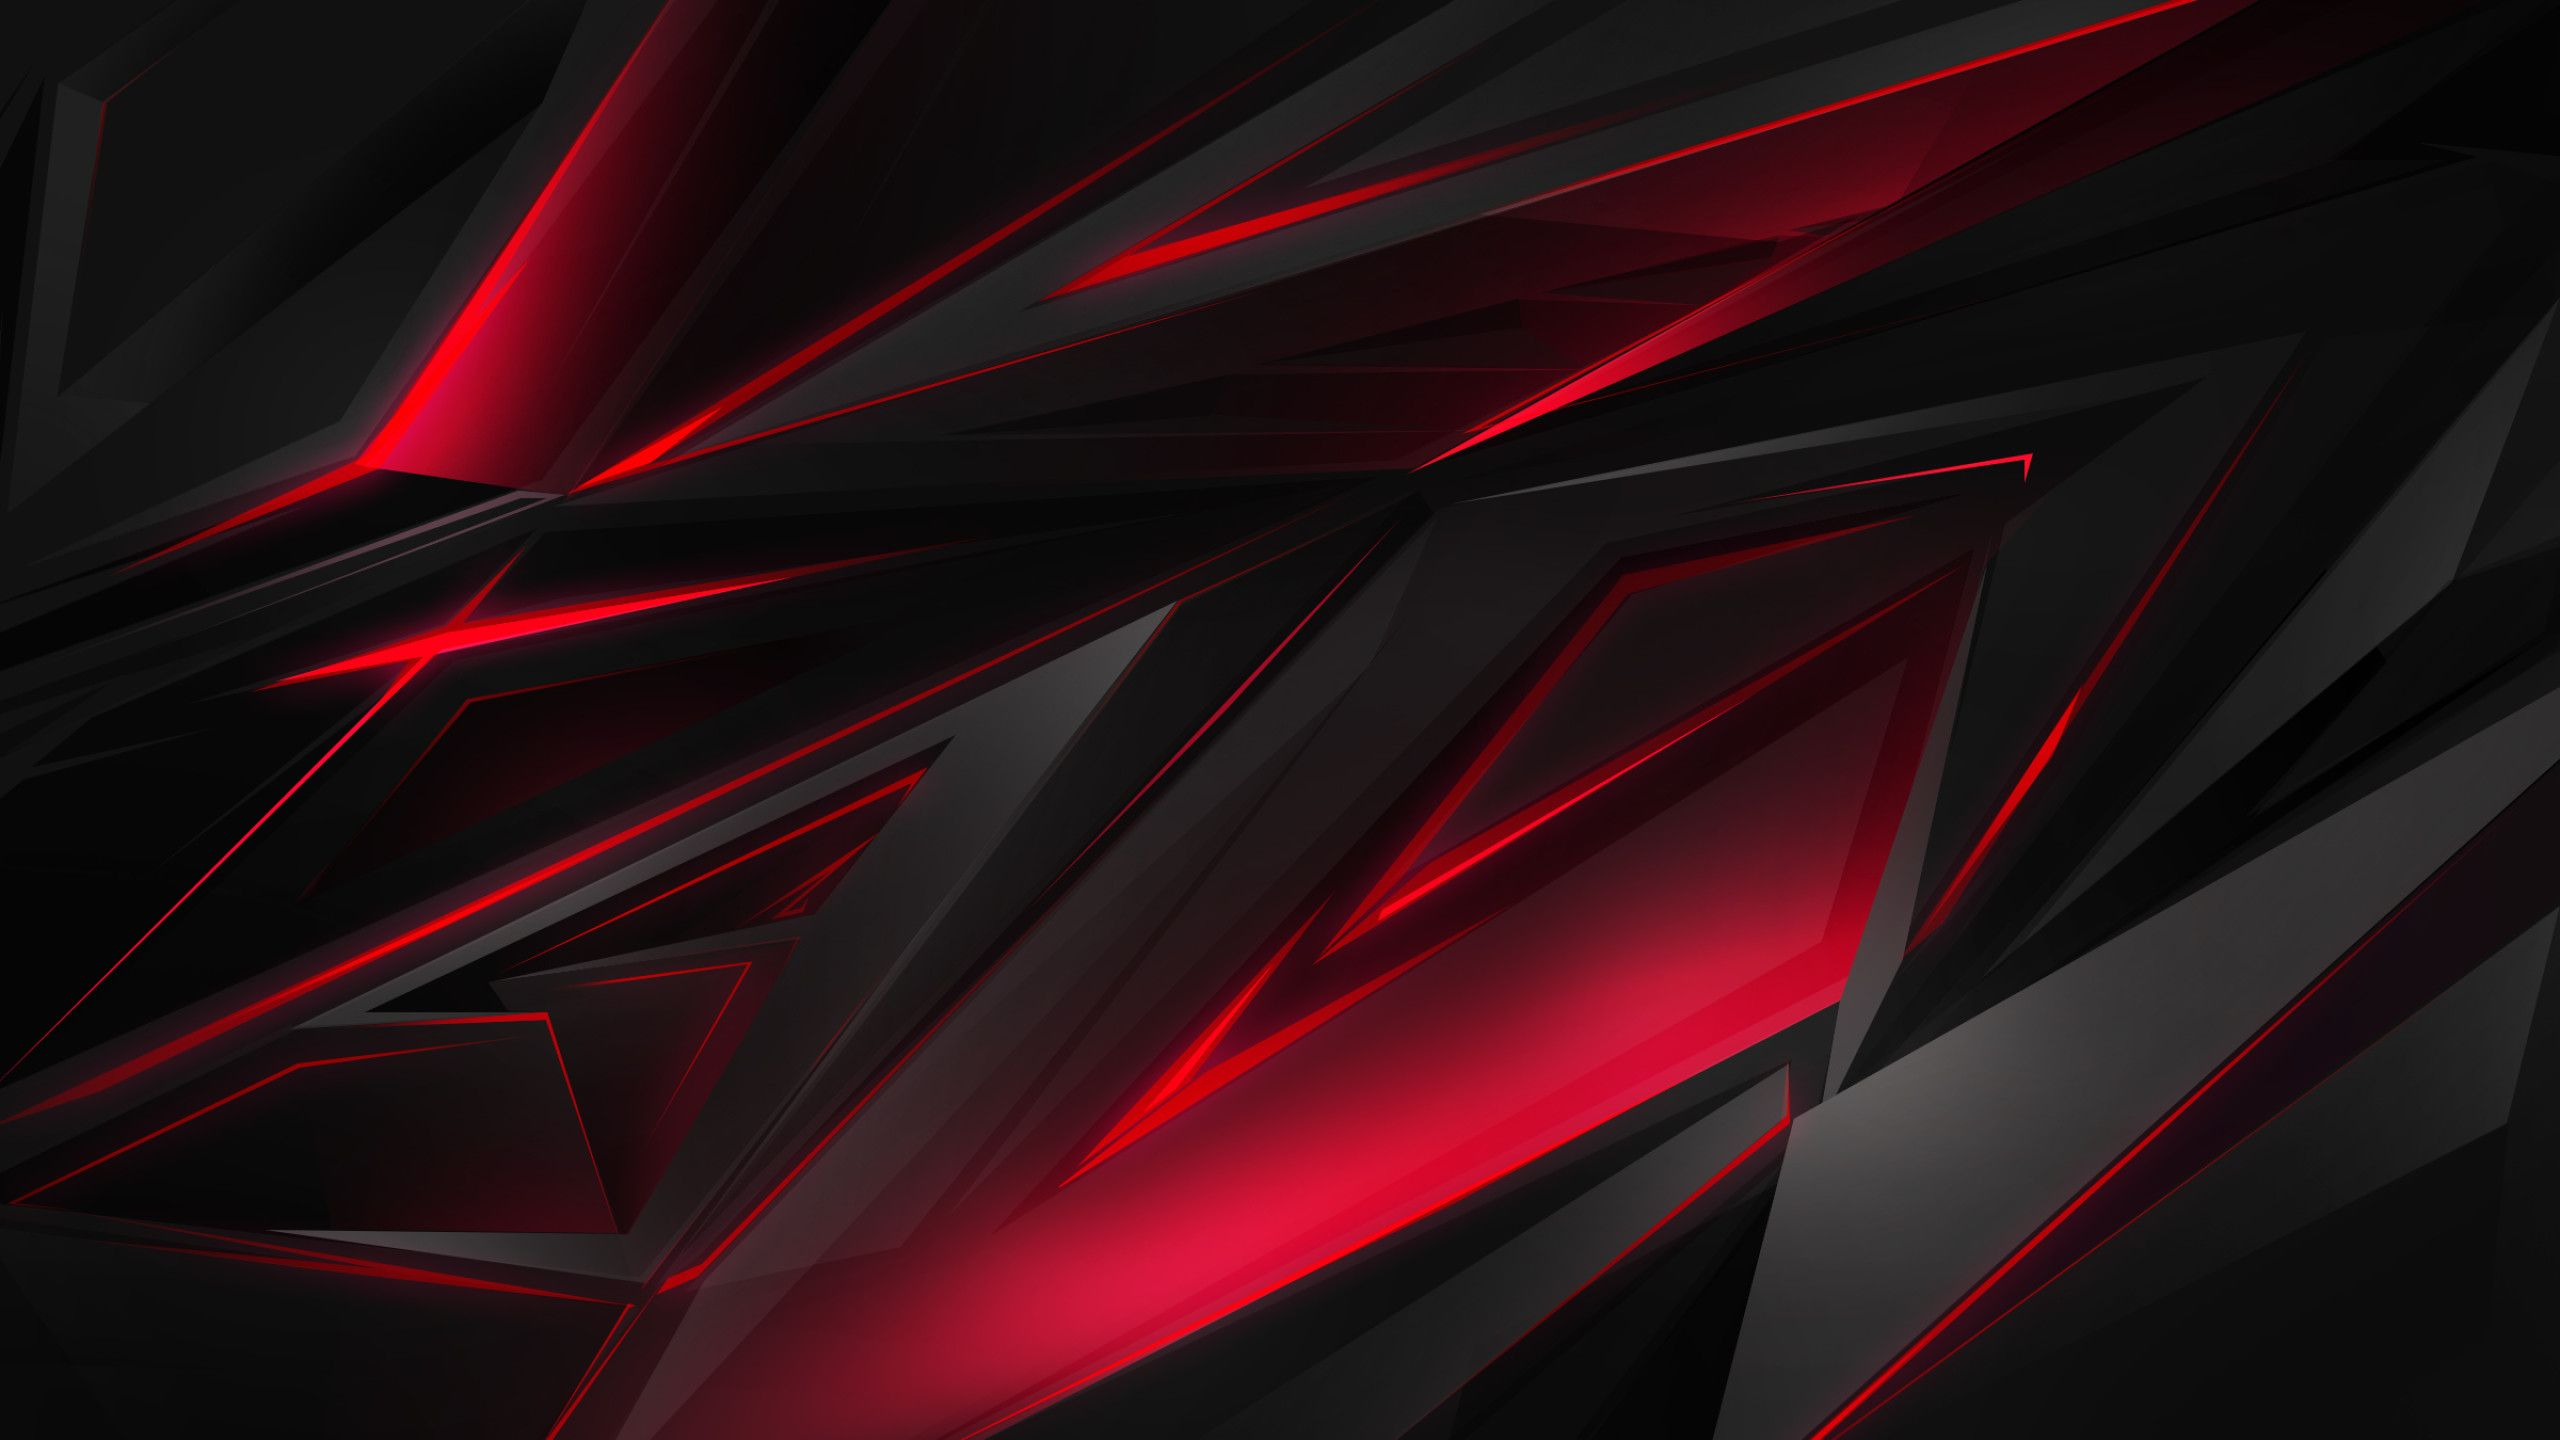 2560 X 1440 Red Abstract Wallpapers Top Free 2560 X 1440 Red Abstract Backgrounds Wallpaperaccess